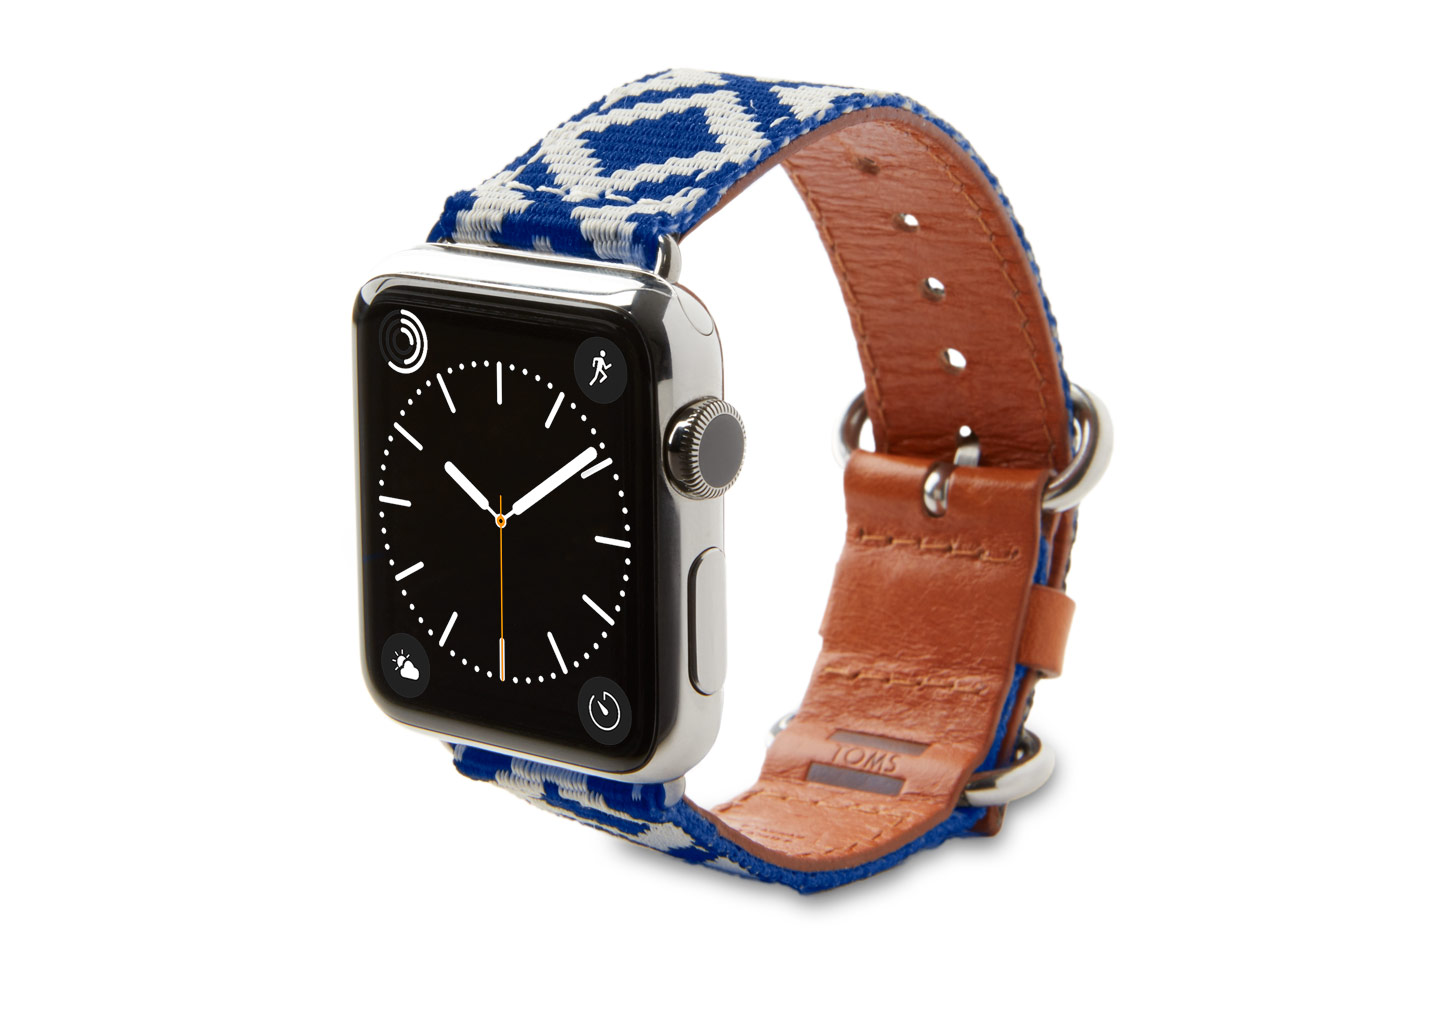 Toms Branded Apple Watch Bands Are For When You Want To